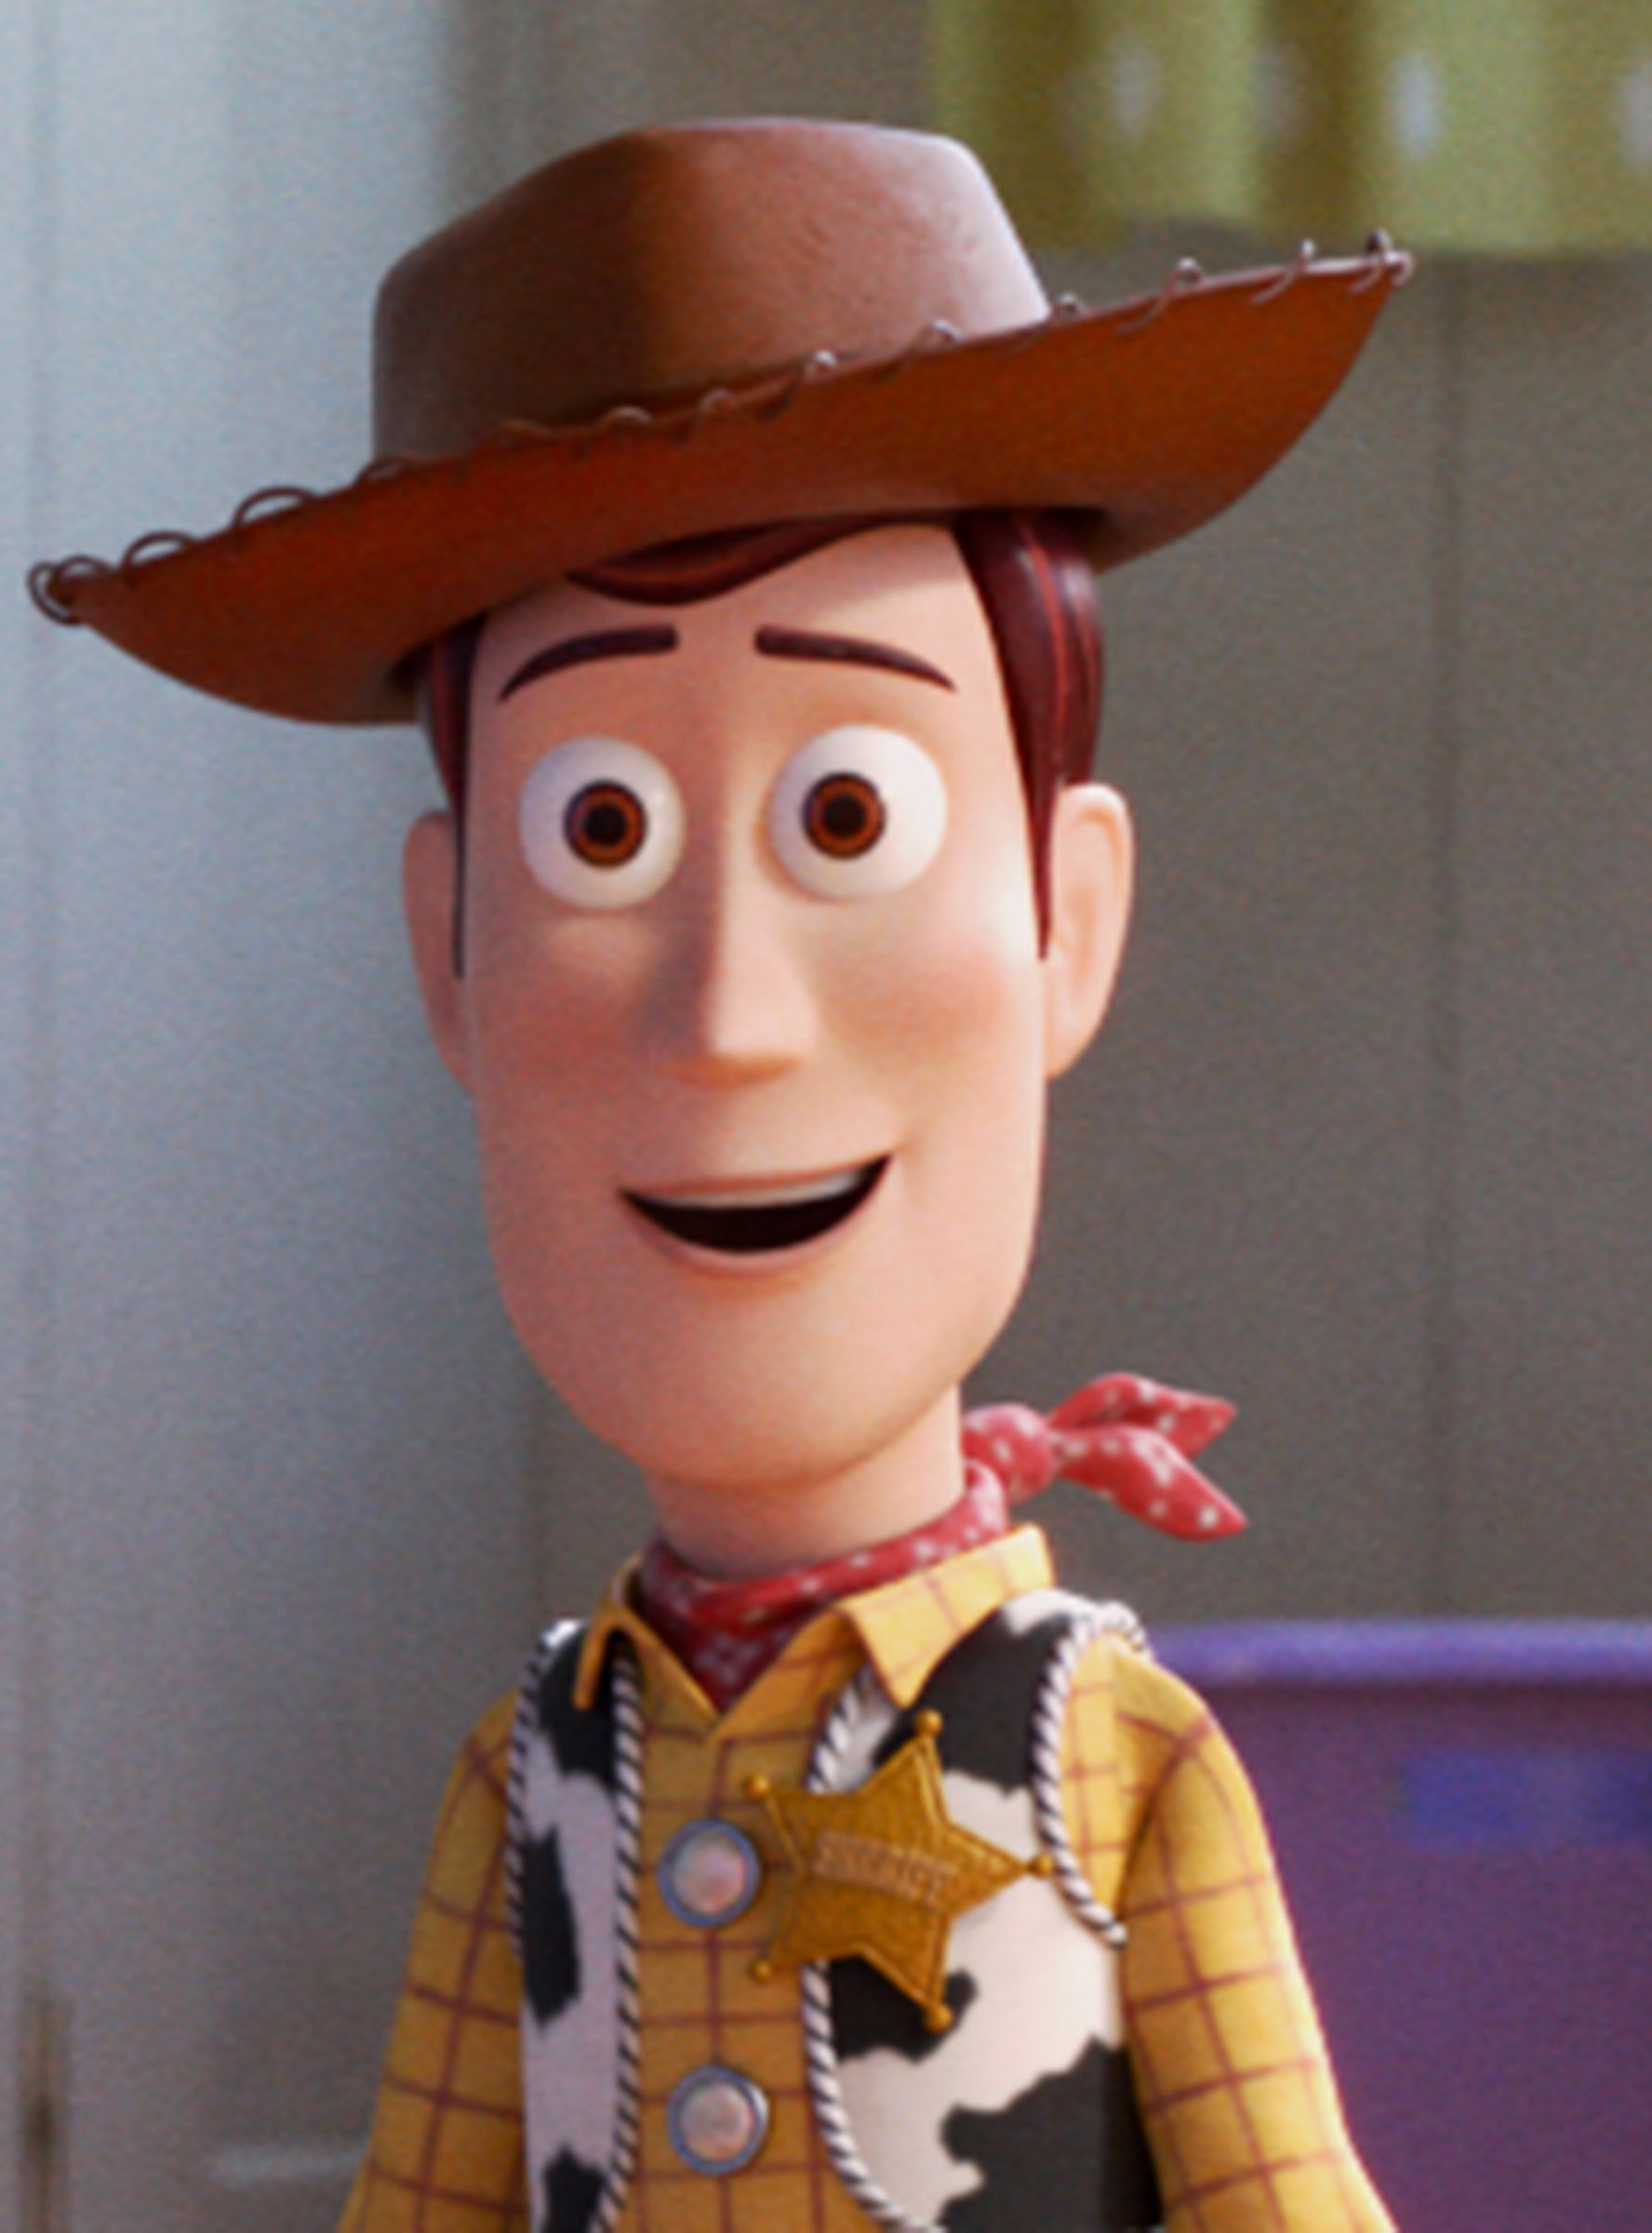 Does The End Of Toy Story 4 Rule Out A Toy Story 5 Woody Toy Story Toy Story Toy Story Characters